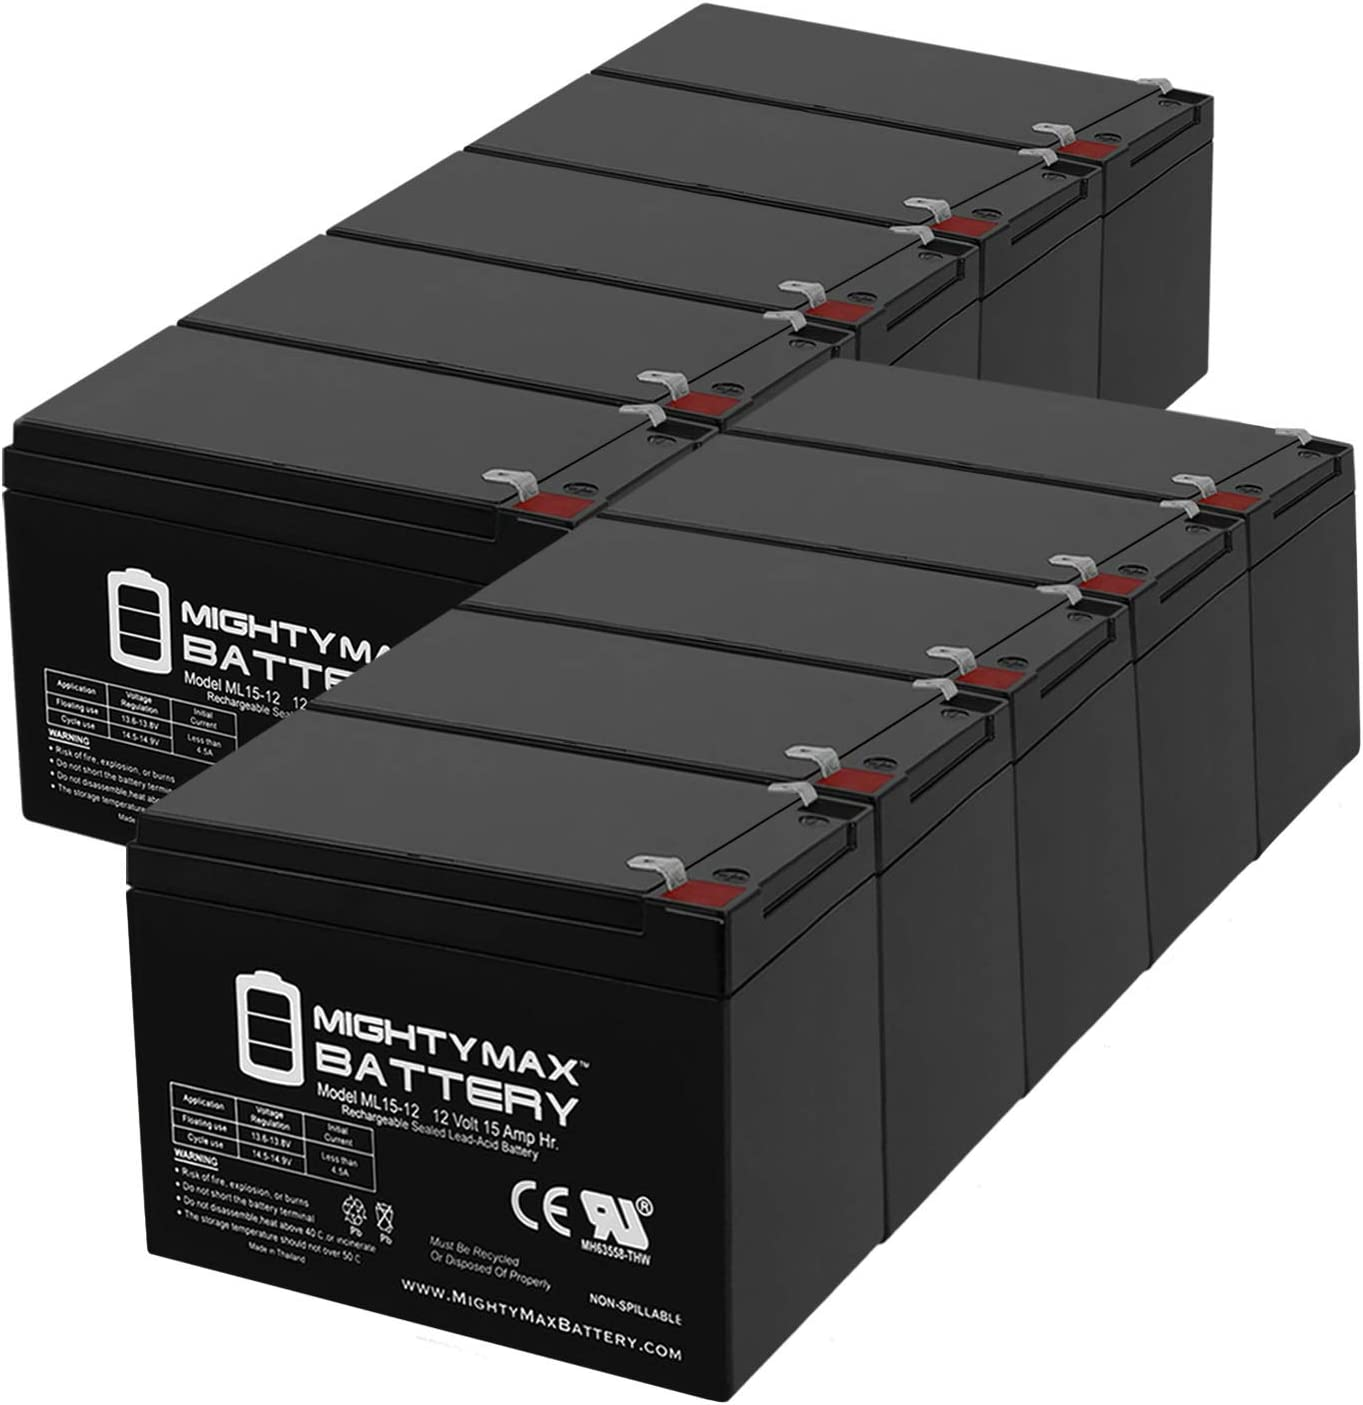 Limited Special Price Mighty Max Battery 12V 15AH Replaces R F2 Mobility Pride depot